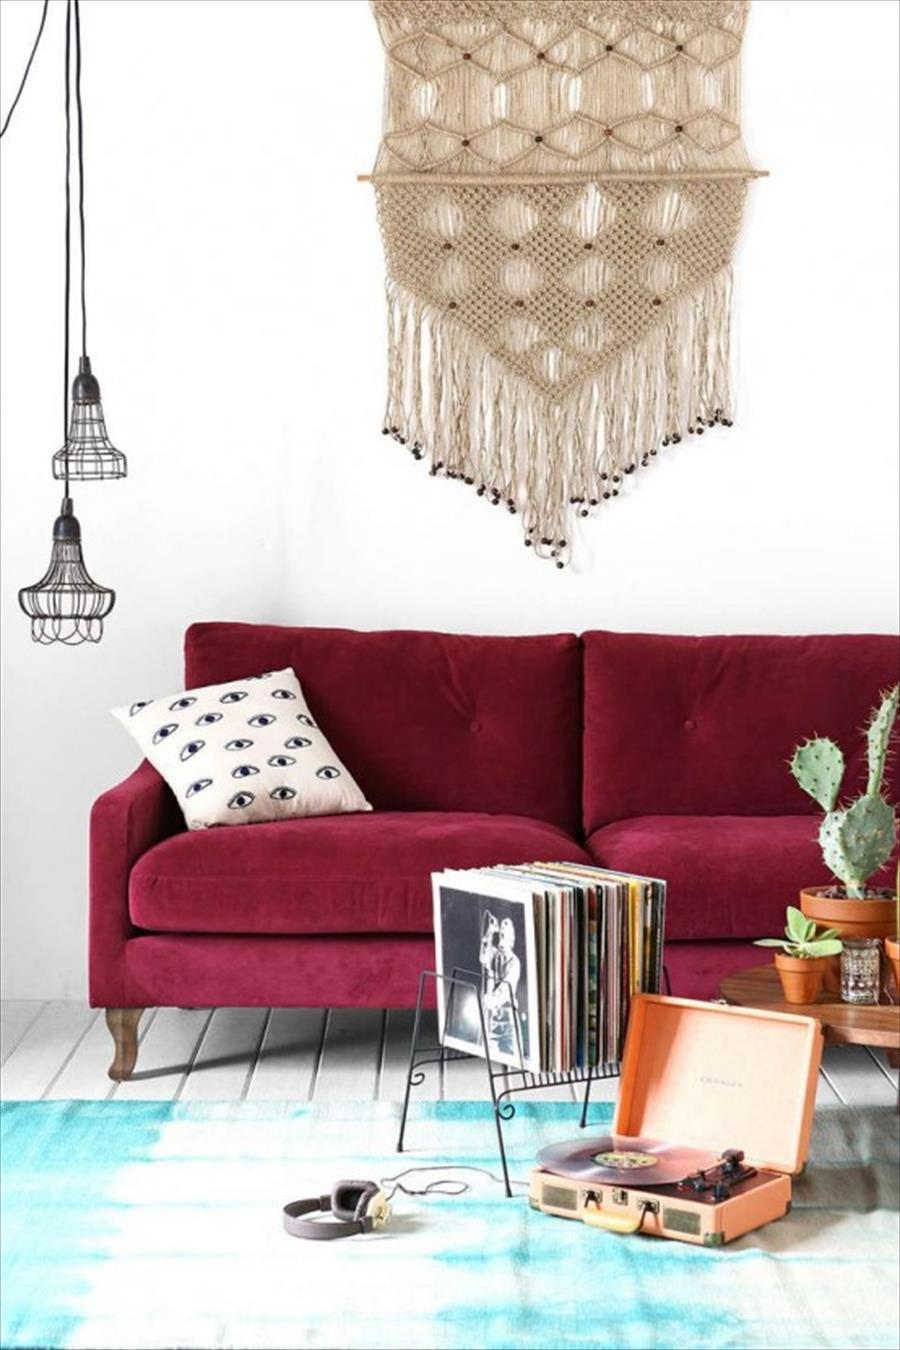 Marsala colors Fall trends The Best Fall Trends to Improve Your Living Room Decoration The Best Fall Trends to Improve Your Living Room Decoration6